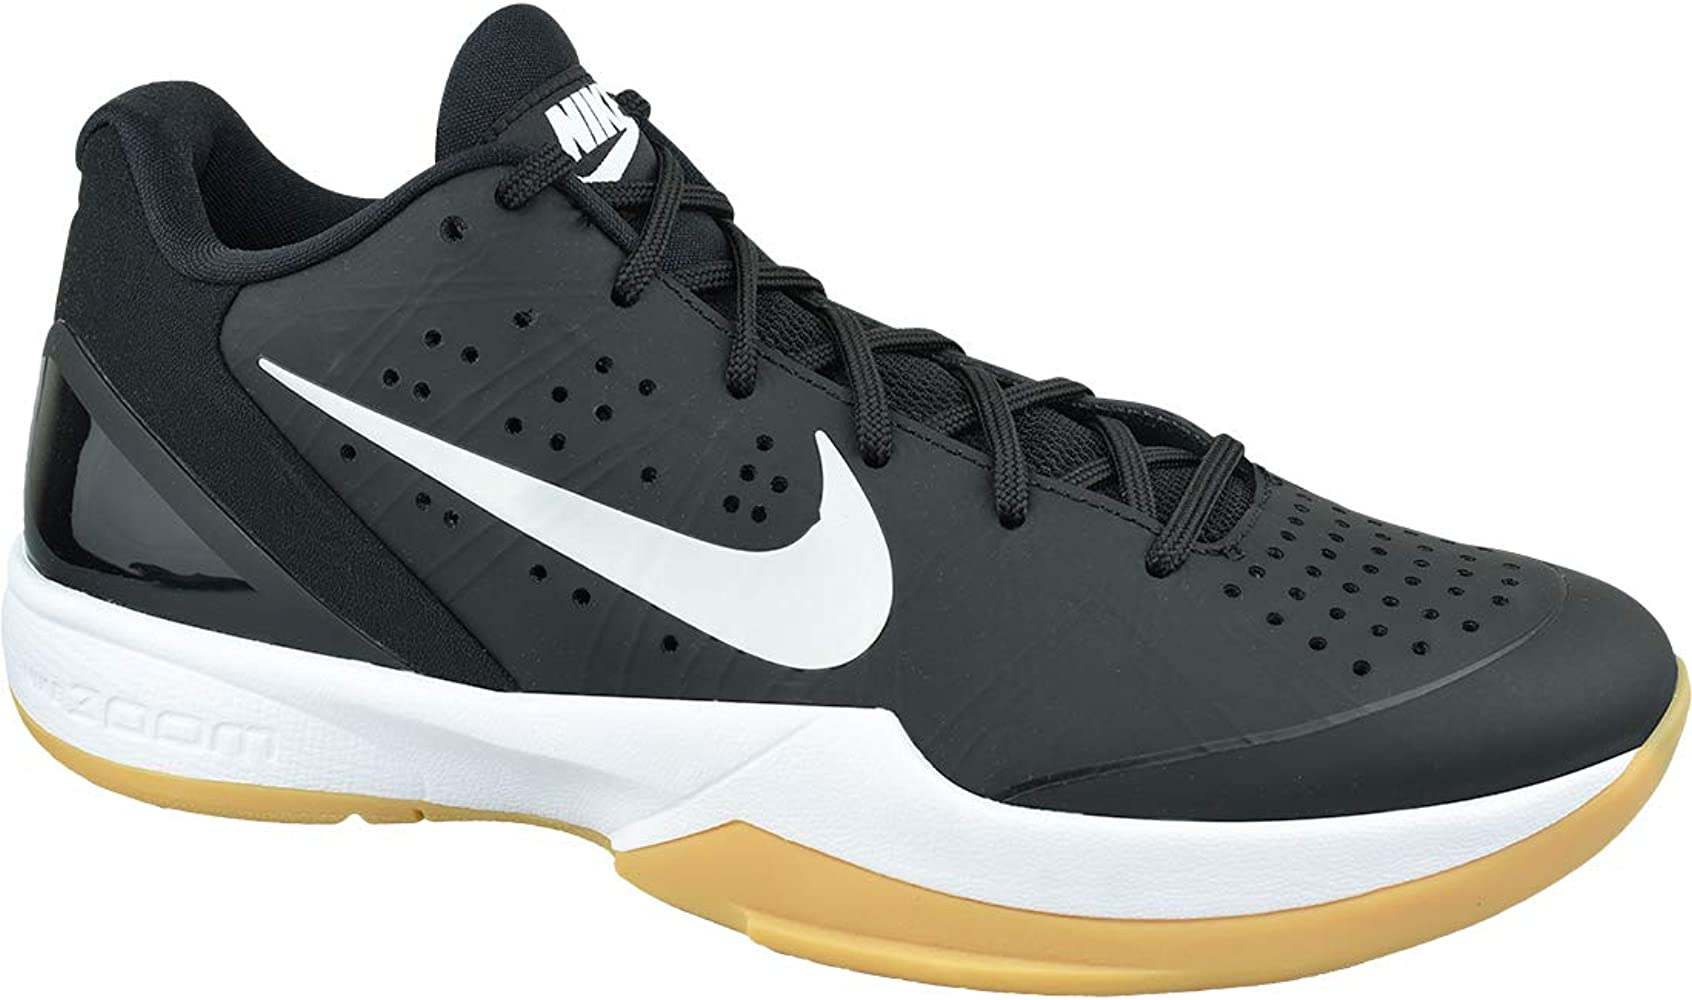 Nike Air Zoom shoes black HyperAttack